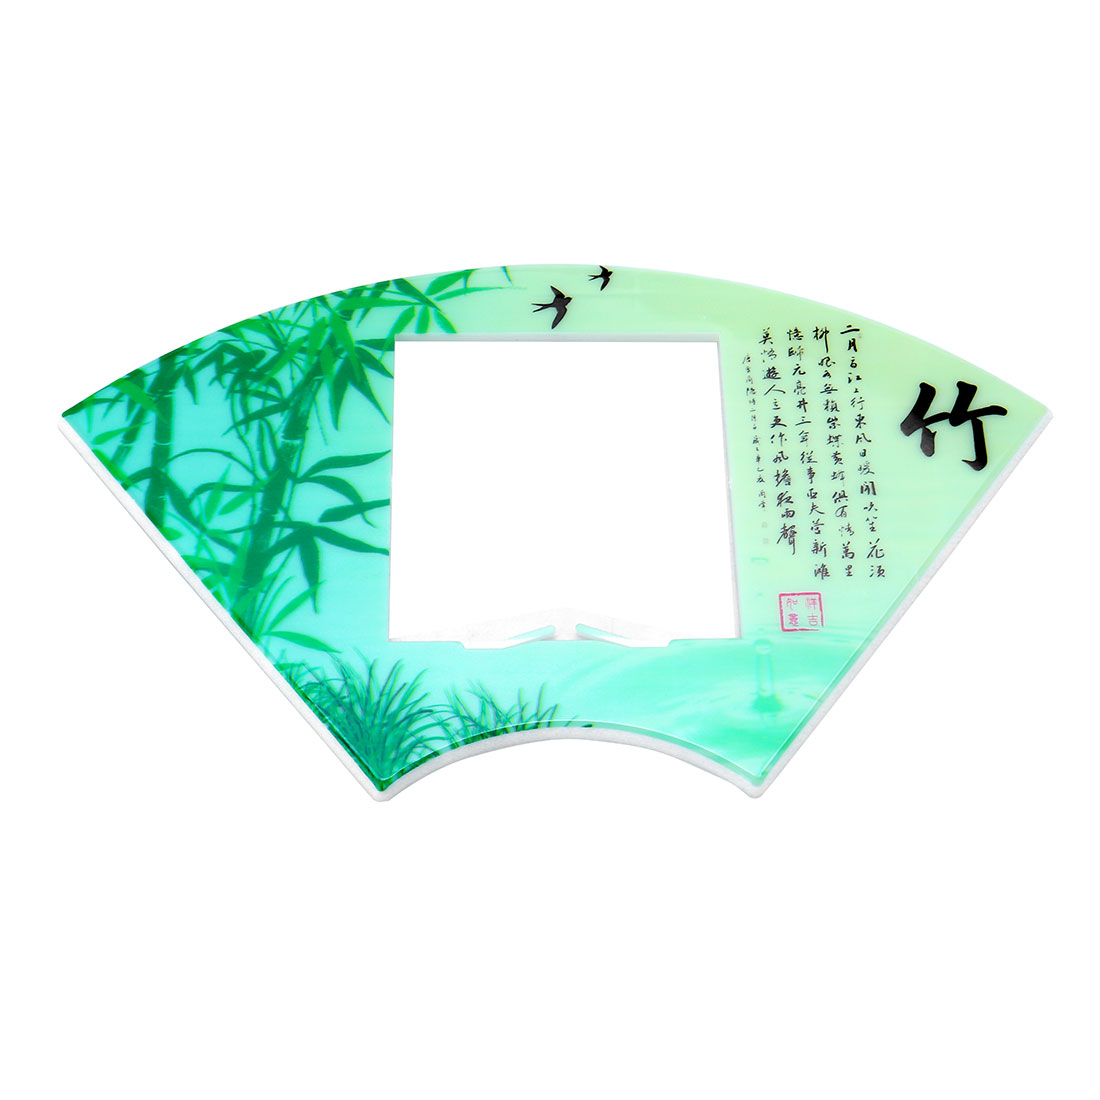 Bamboo Printed Fan Shape Switch Stickers Cover